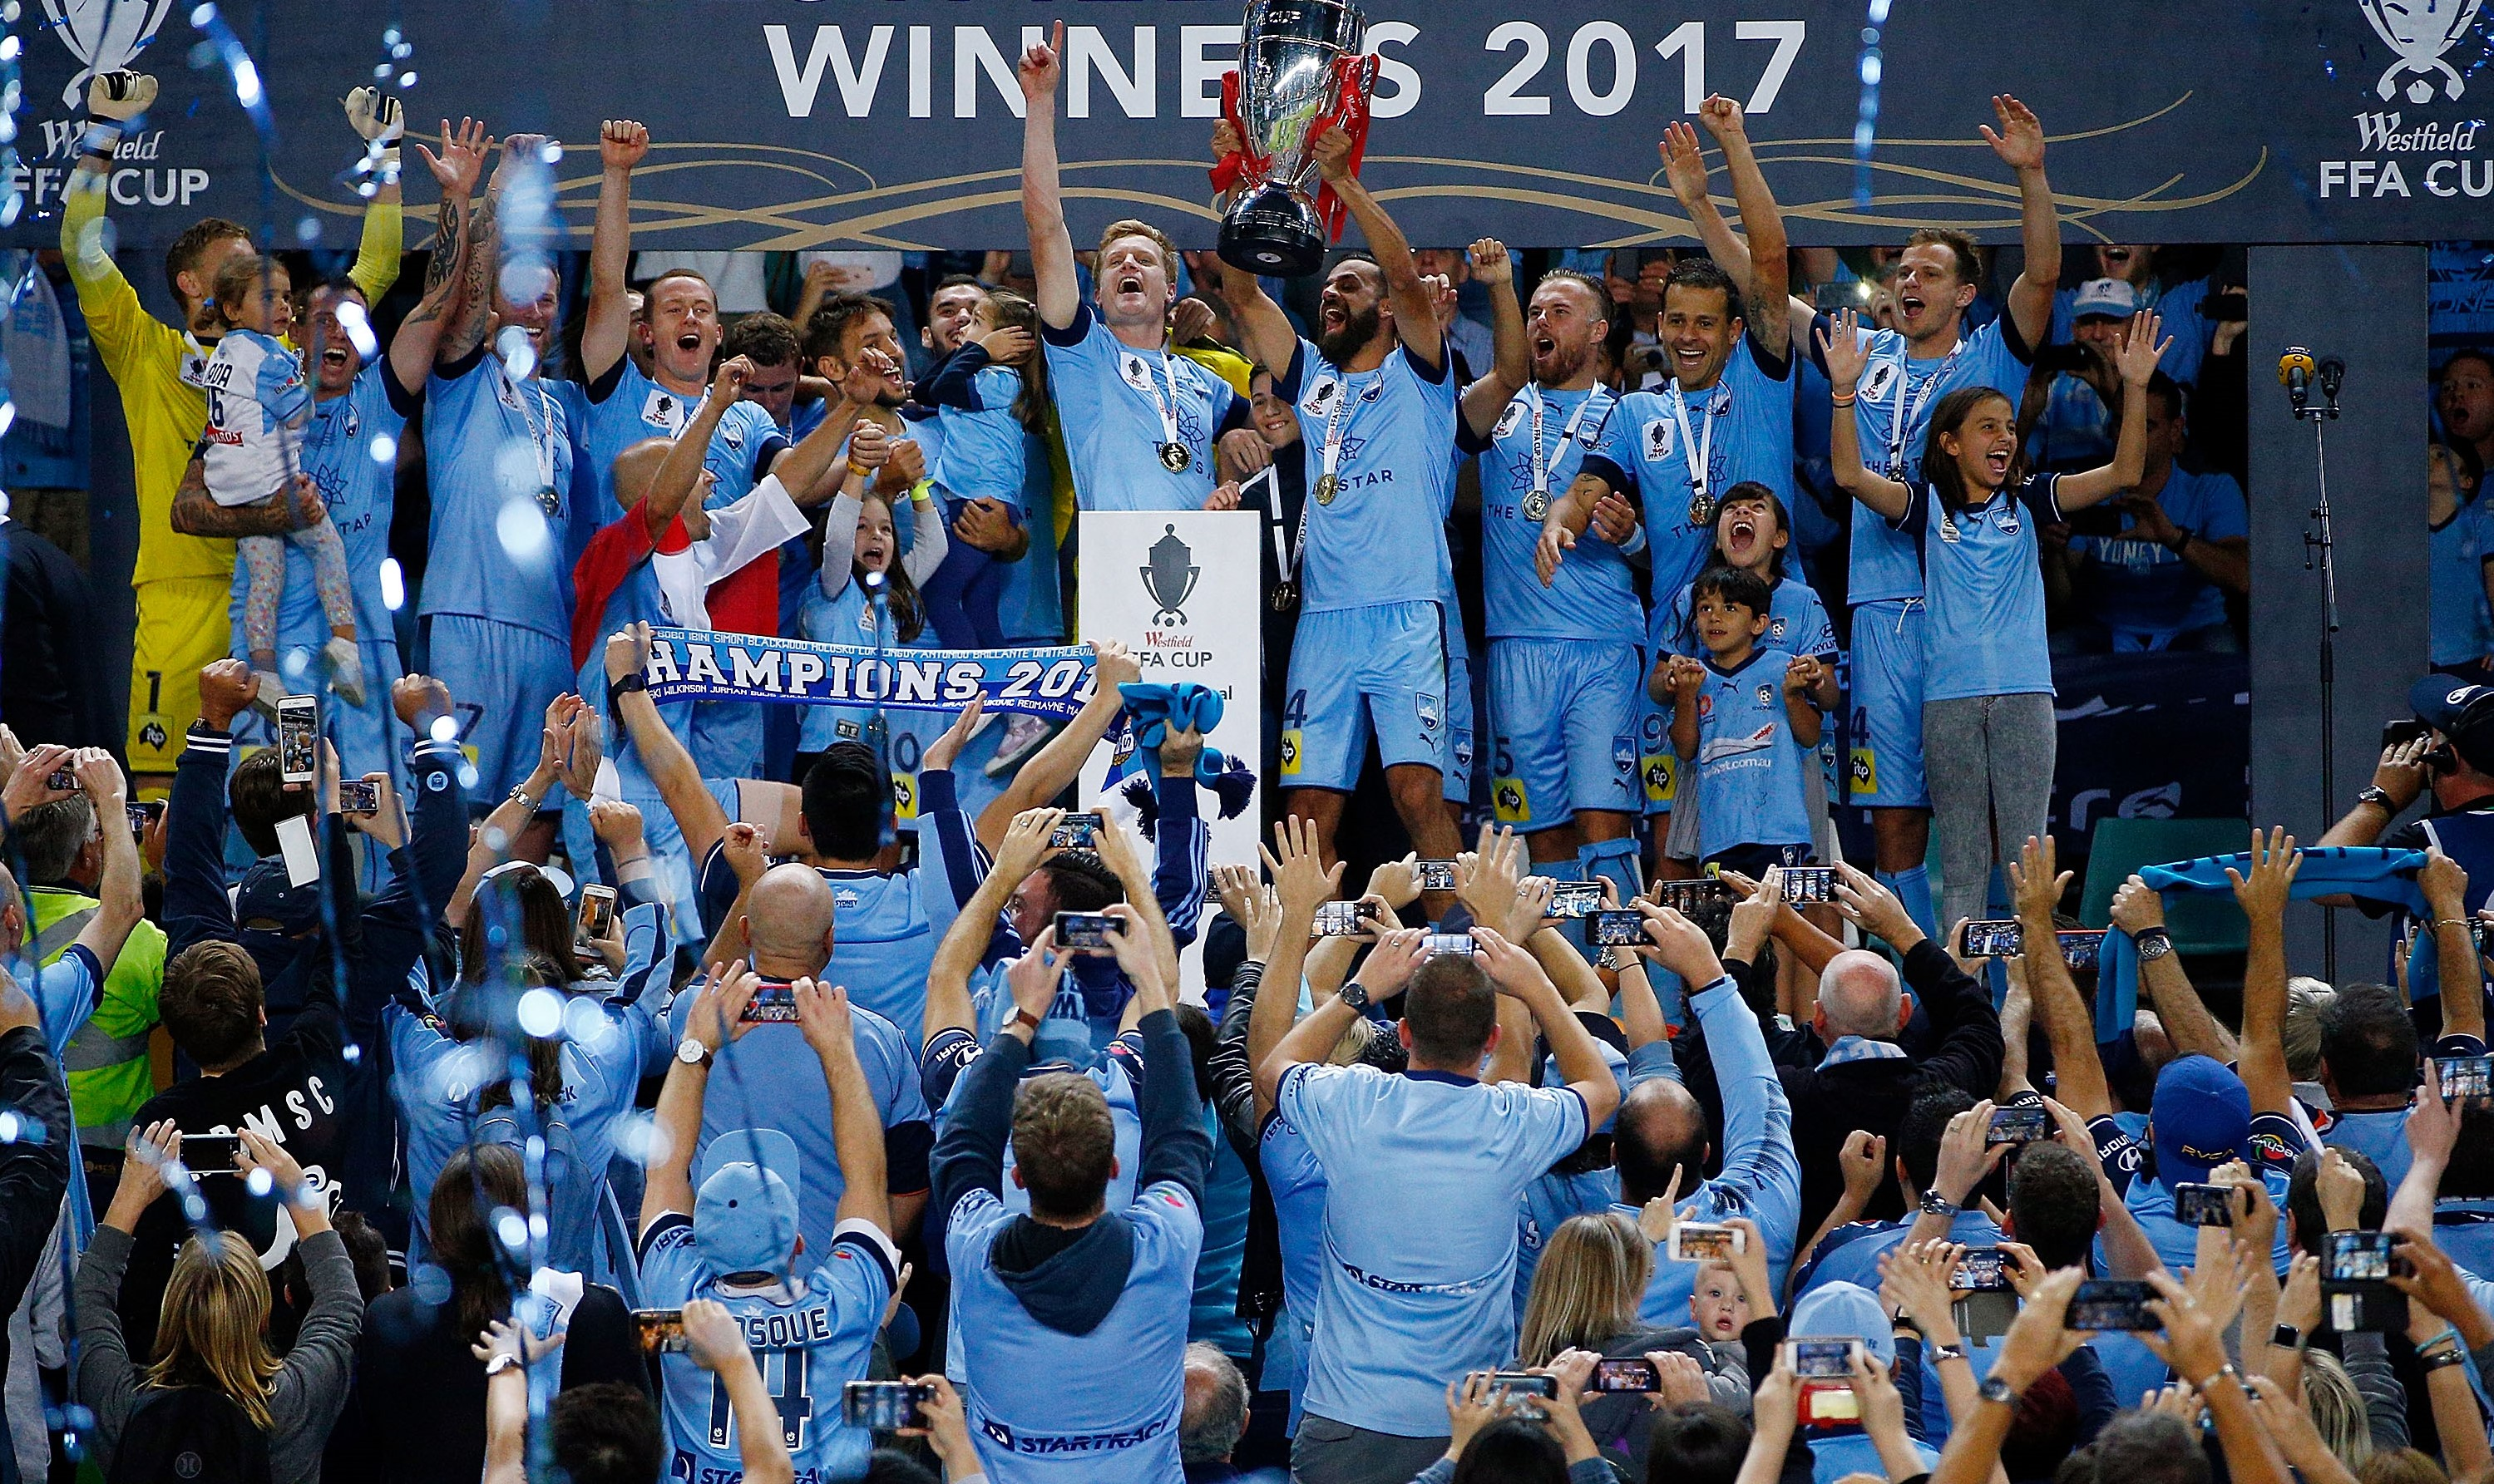 Sydney FC lifting the 2017 FFA Cup trophy